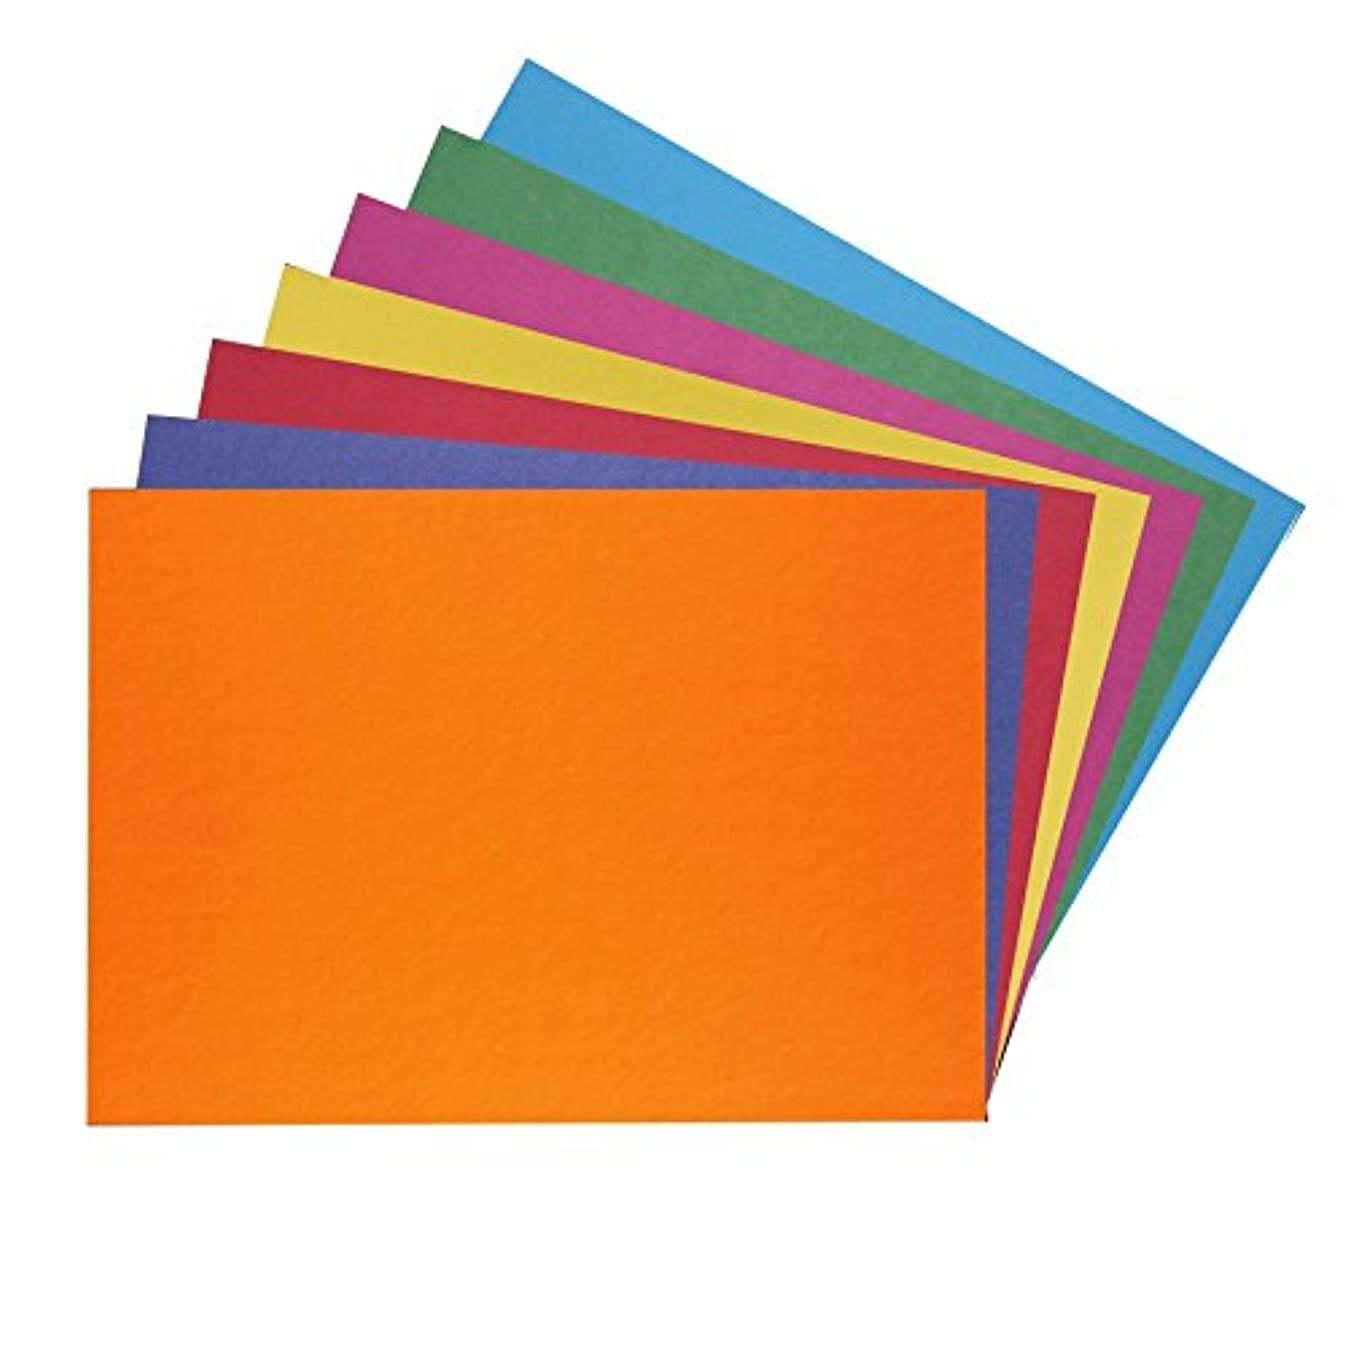 House of Card & Paper A4 220 GSM Card - Assorted Bright (Pack of 25 Sheets)